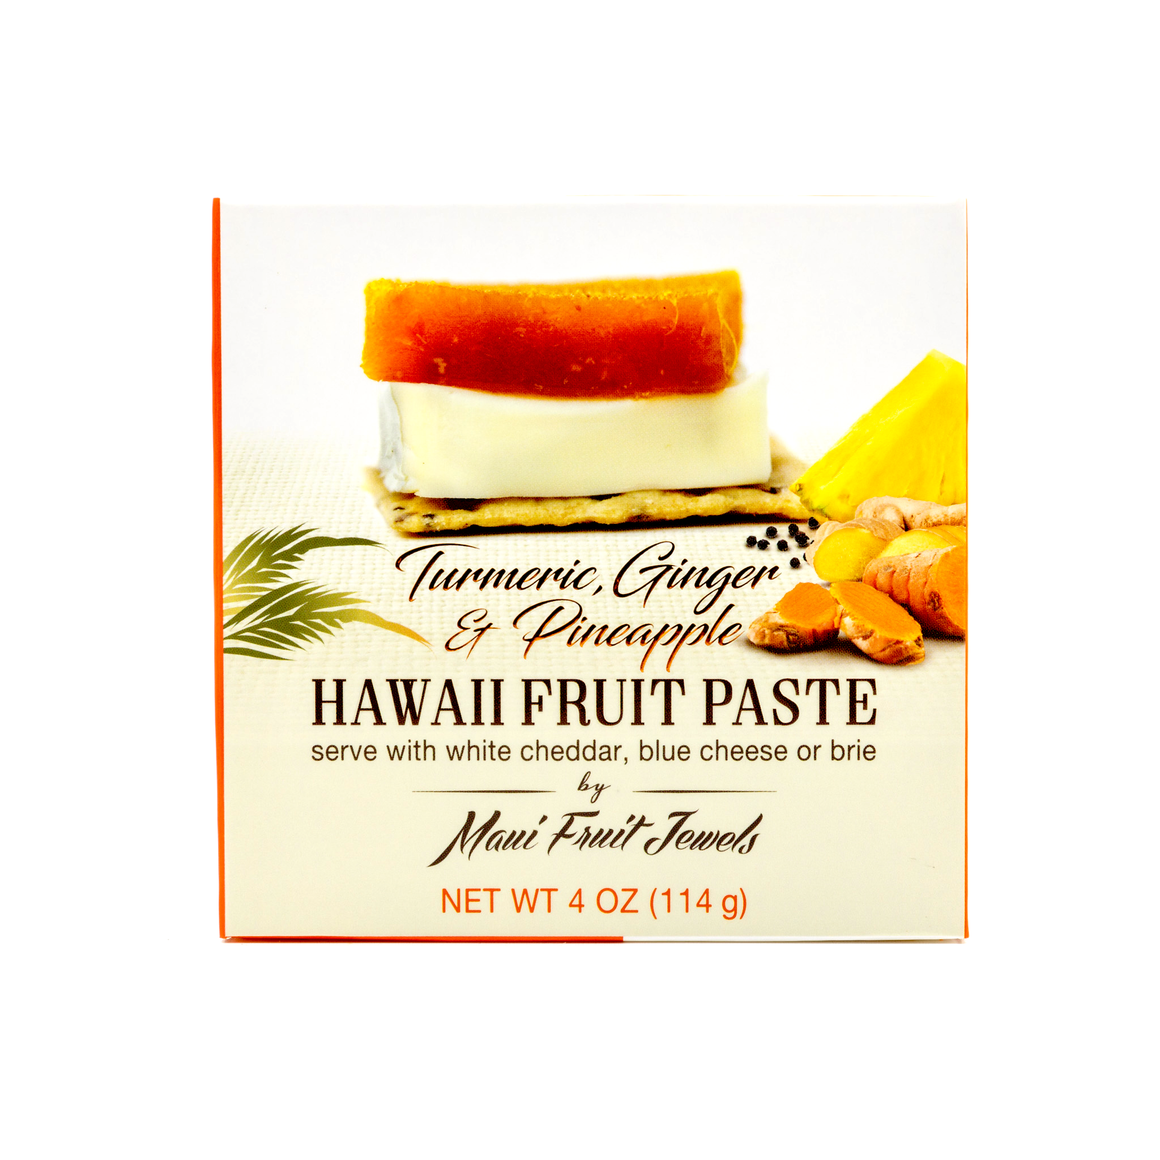 Turmeric Ginger Pineapple Hawaii Fruit Paste